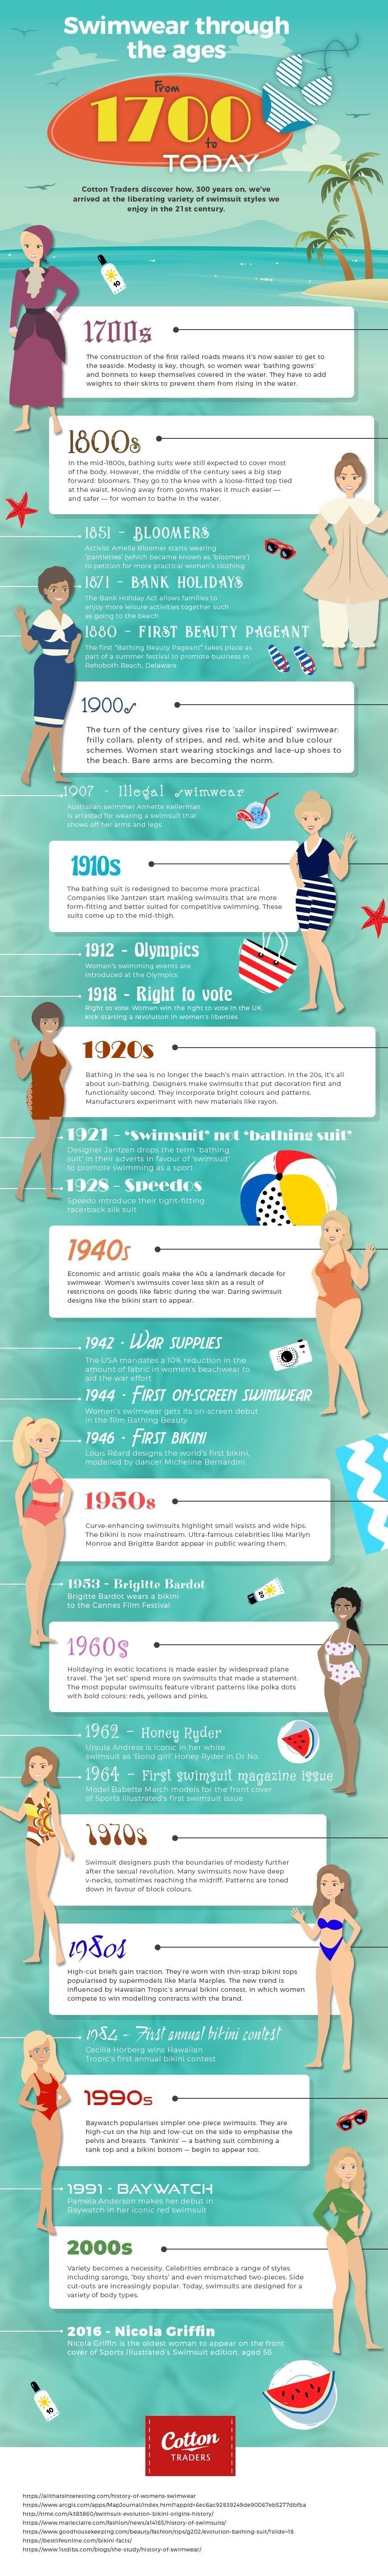 From 1700 to today, swimwear.#infographic